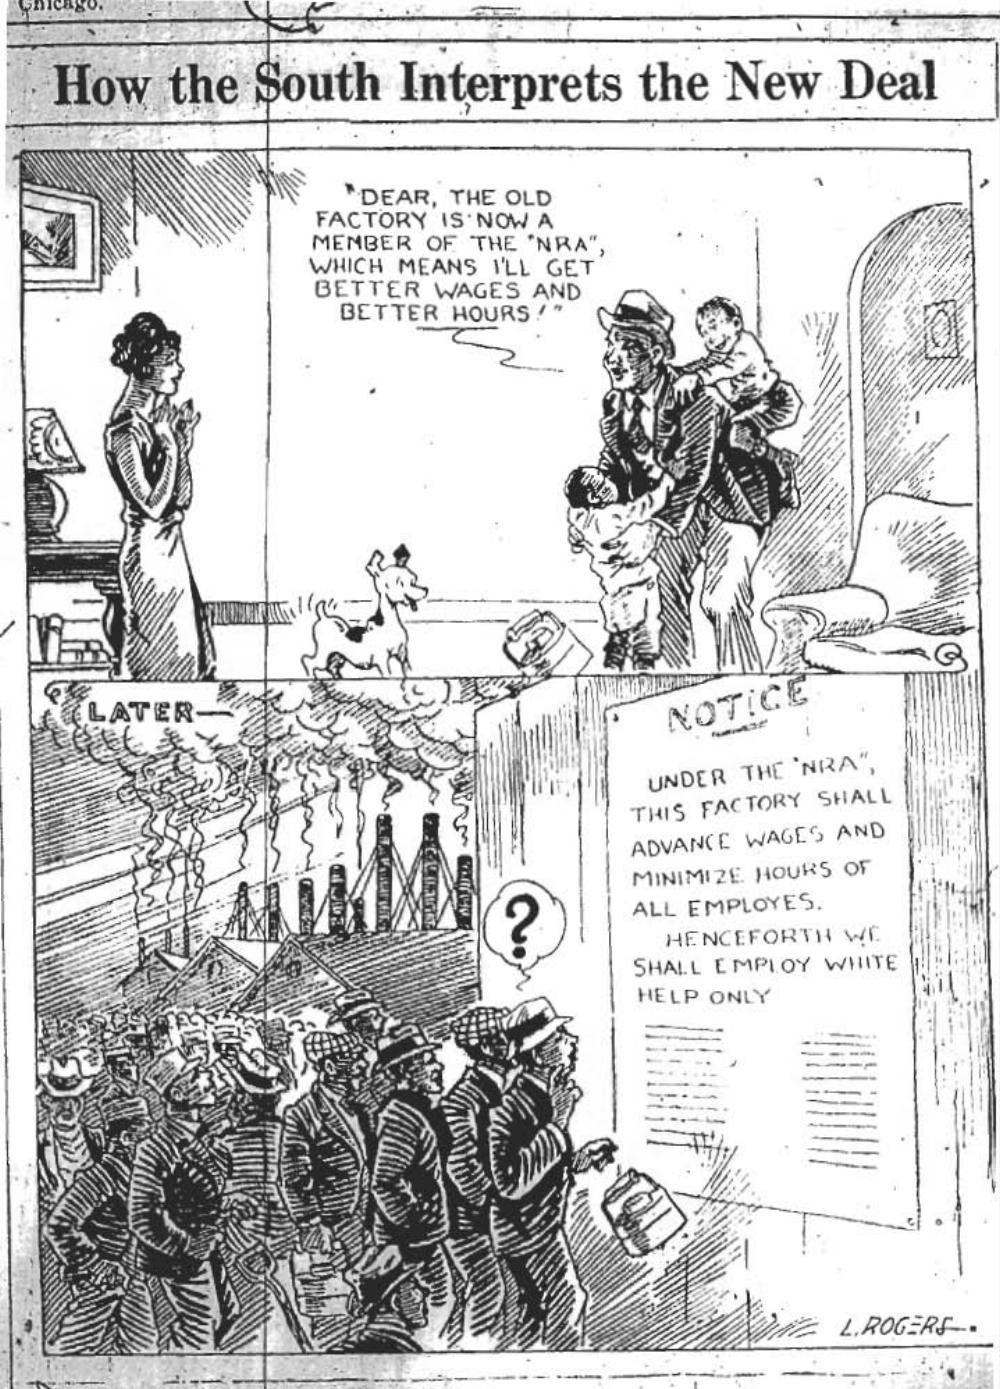 the new deal was suppose to help citizens financially the bottom the new deal was suppose to help citizens financially the bottom of the cartoon says